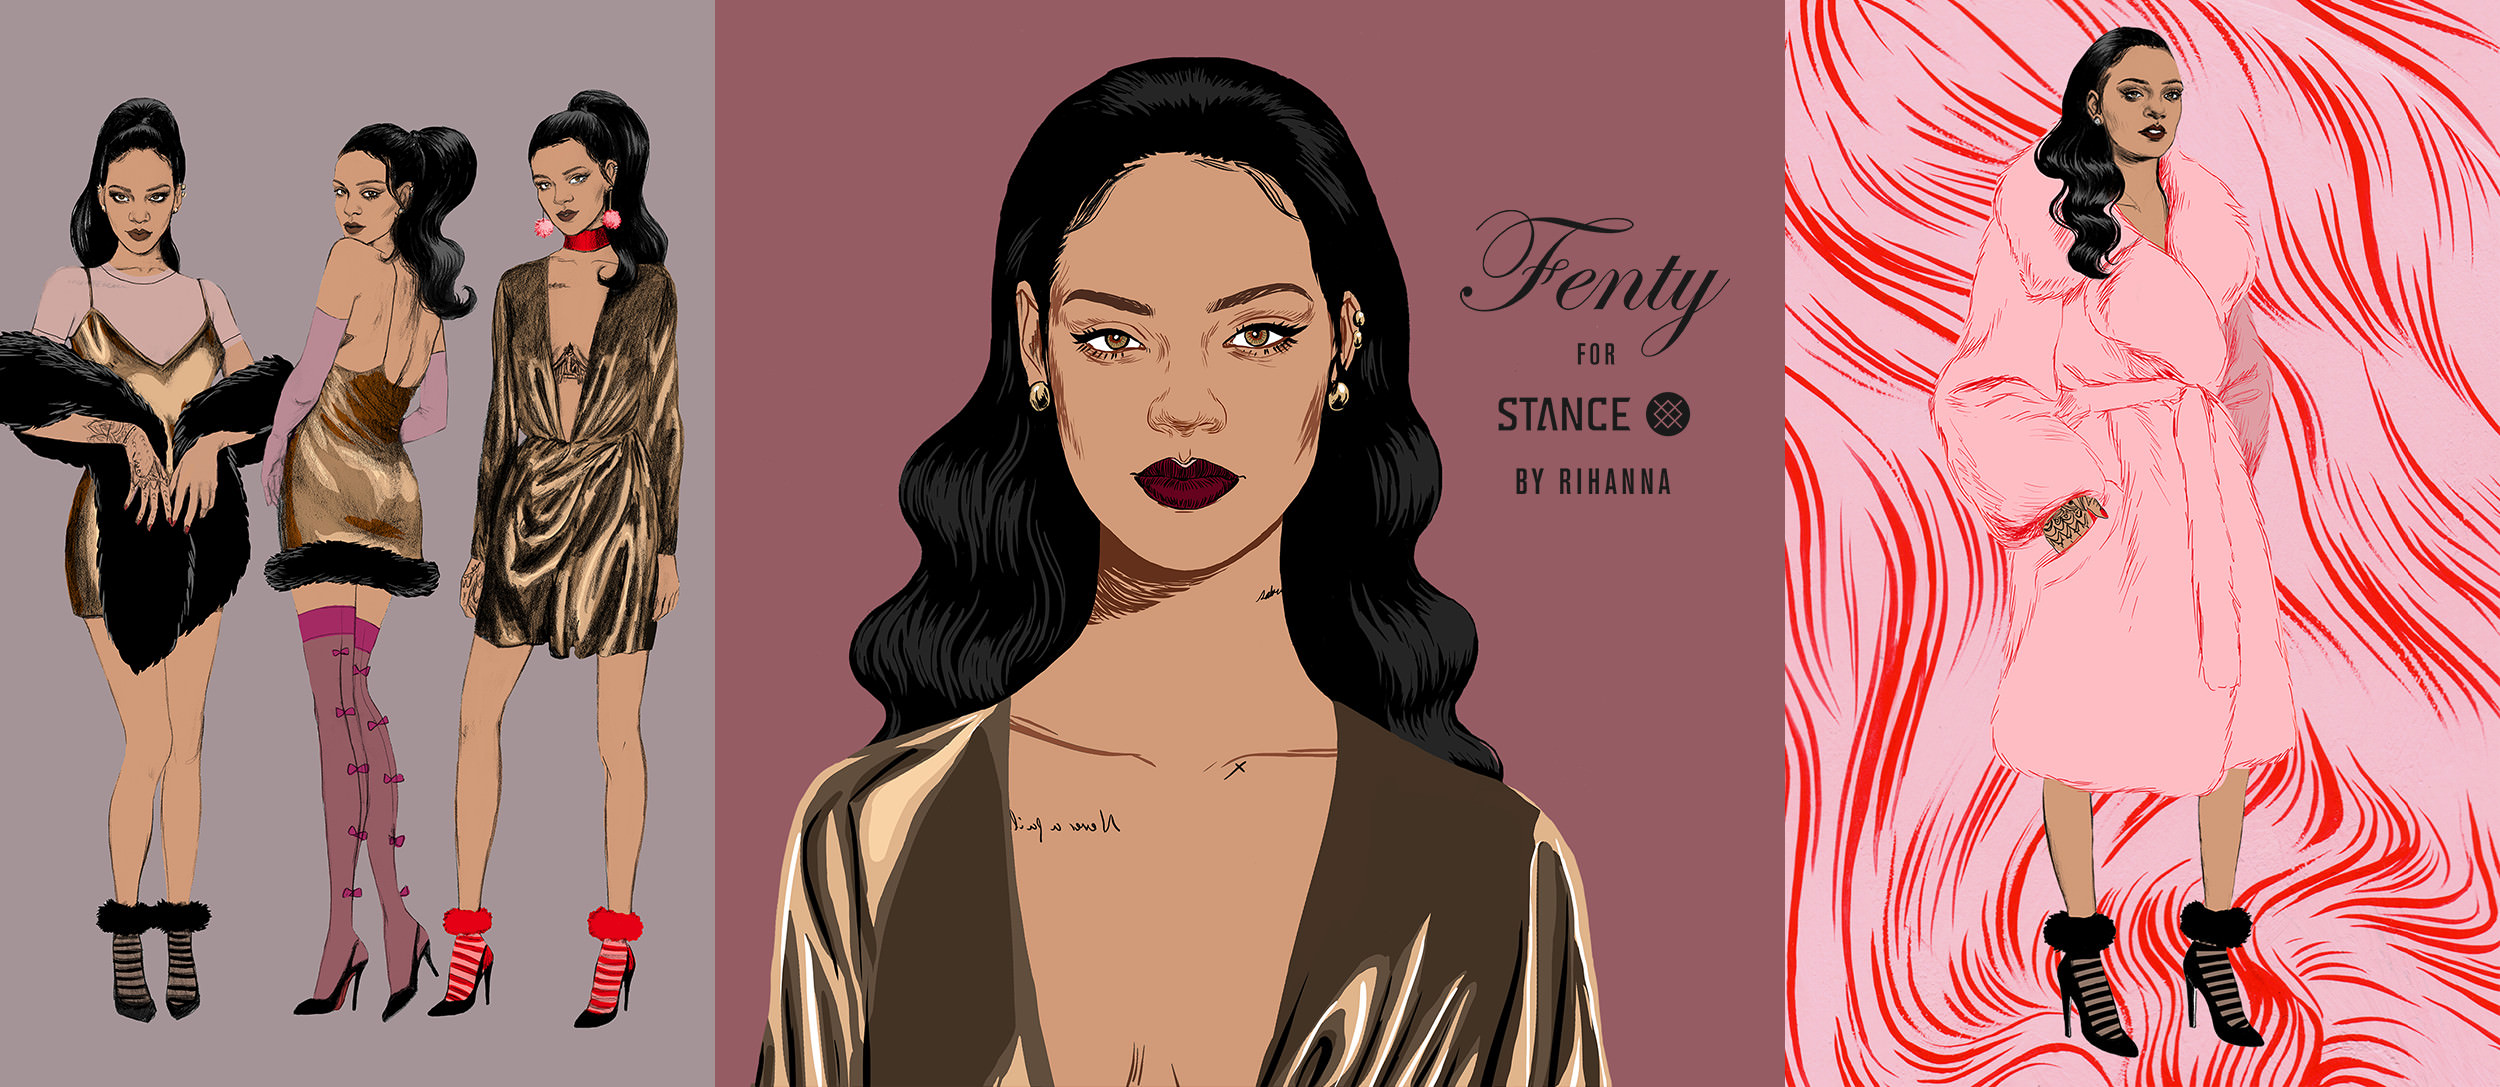 Rihanna Stance holiday socks 2016 banner